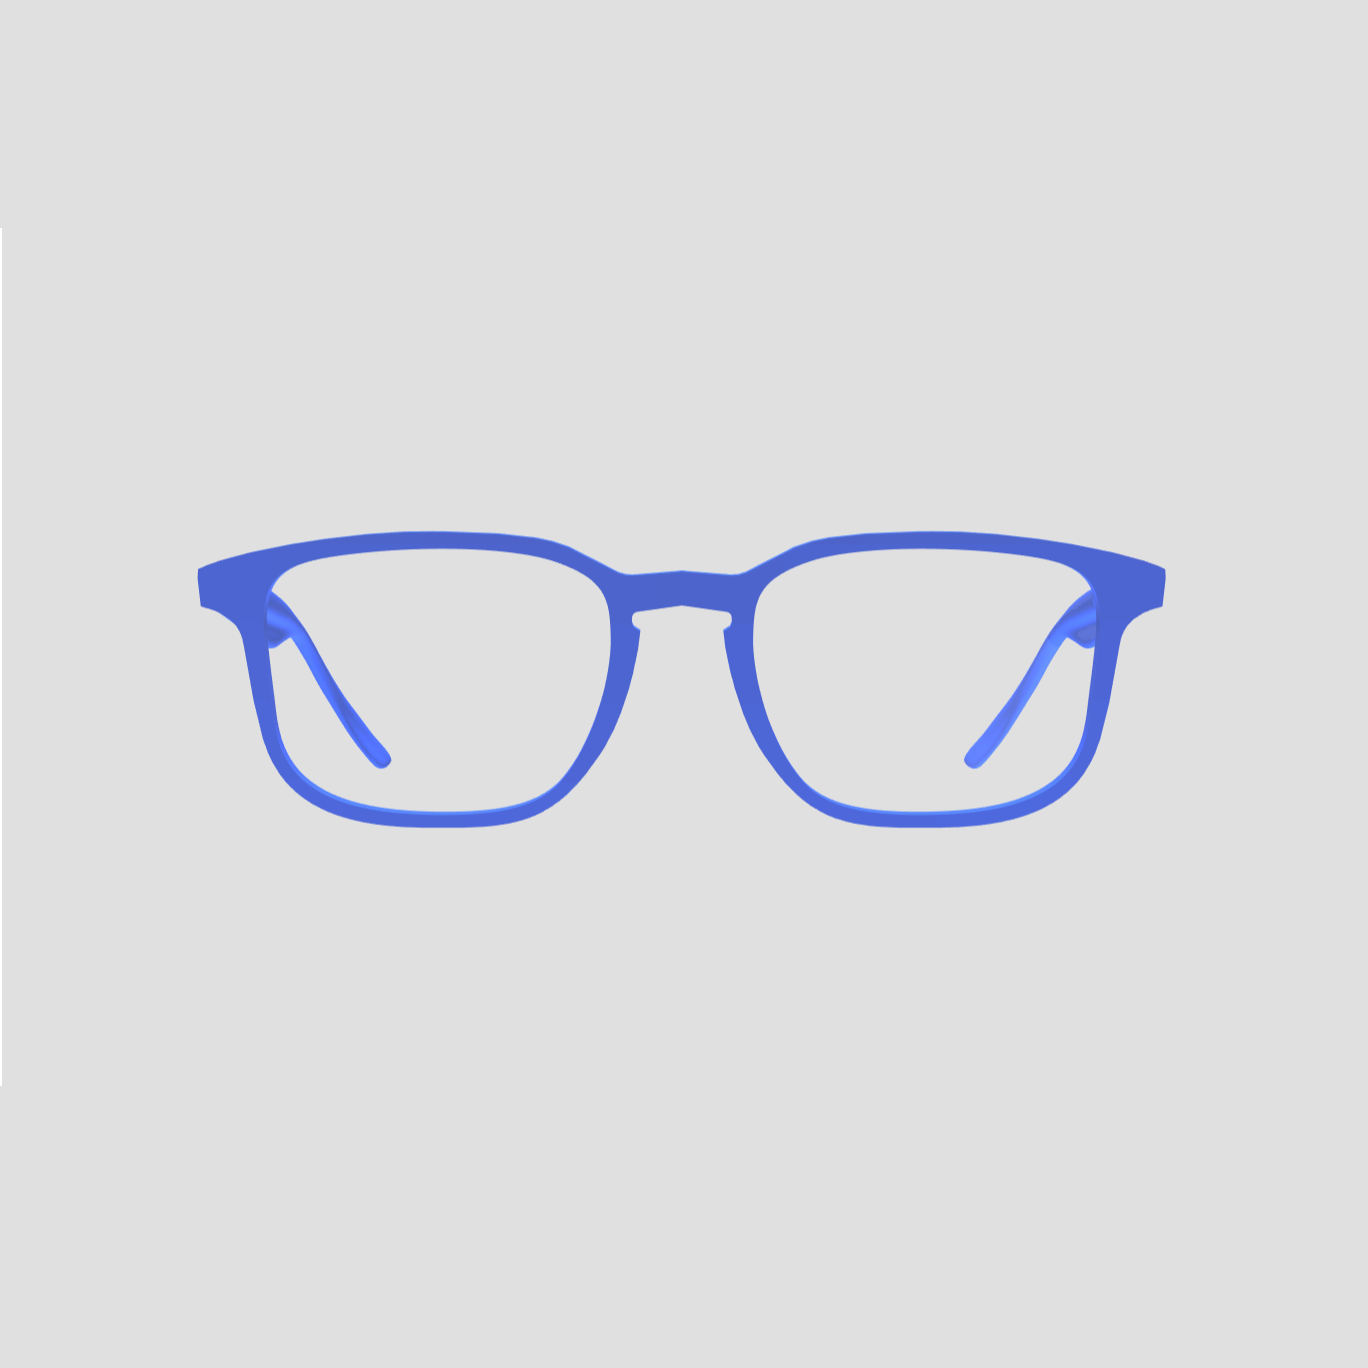 51 - For the tech lovers. The Hopper is a bold square frame inspired by the storied inventor.